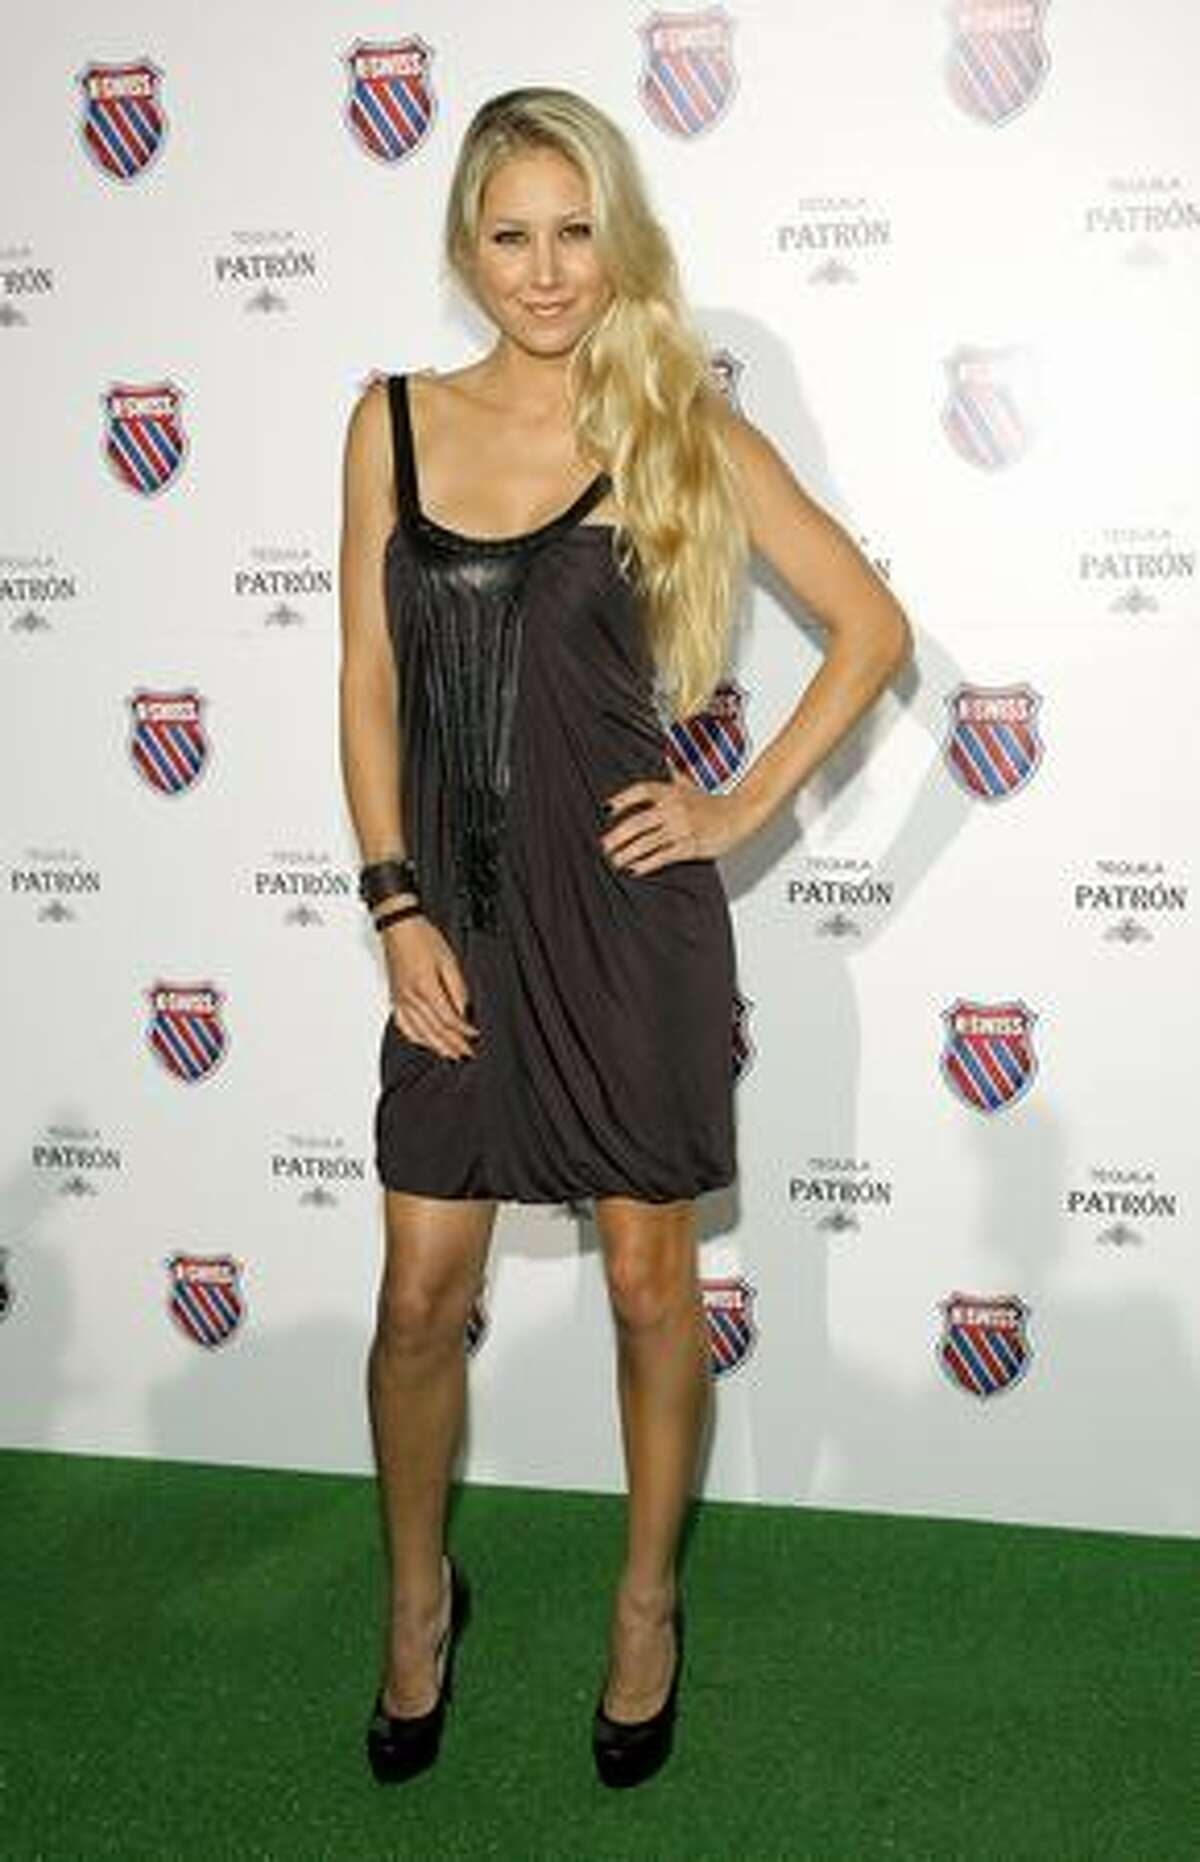 """Anna Kournikova attends the """"Play Nice"""" runway show and party hosted by K-Swiss to kick off U.S. Open week at Skyline Gallery in New York on Thursday, Aug. 26, 2009."""